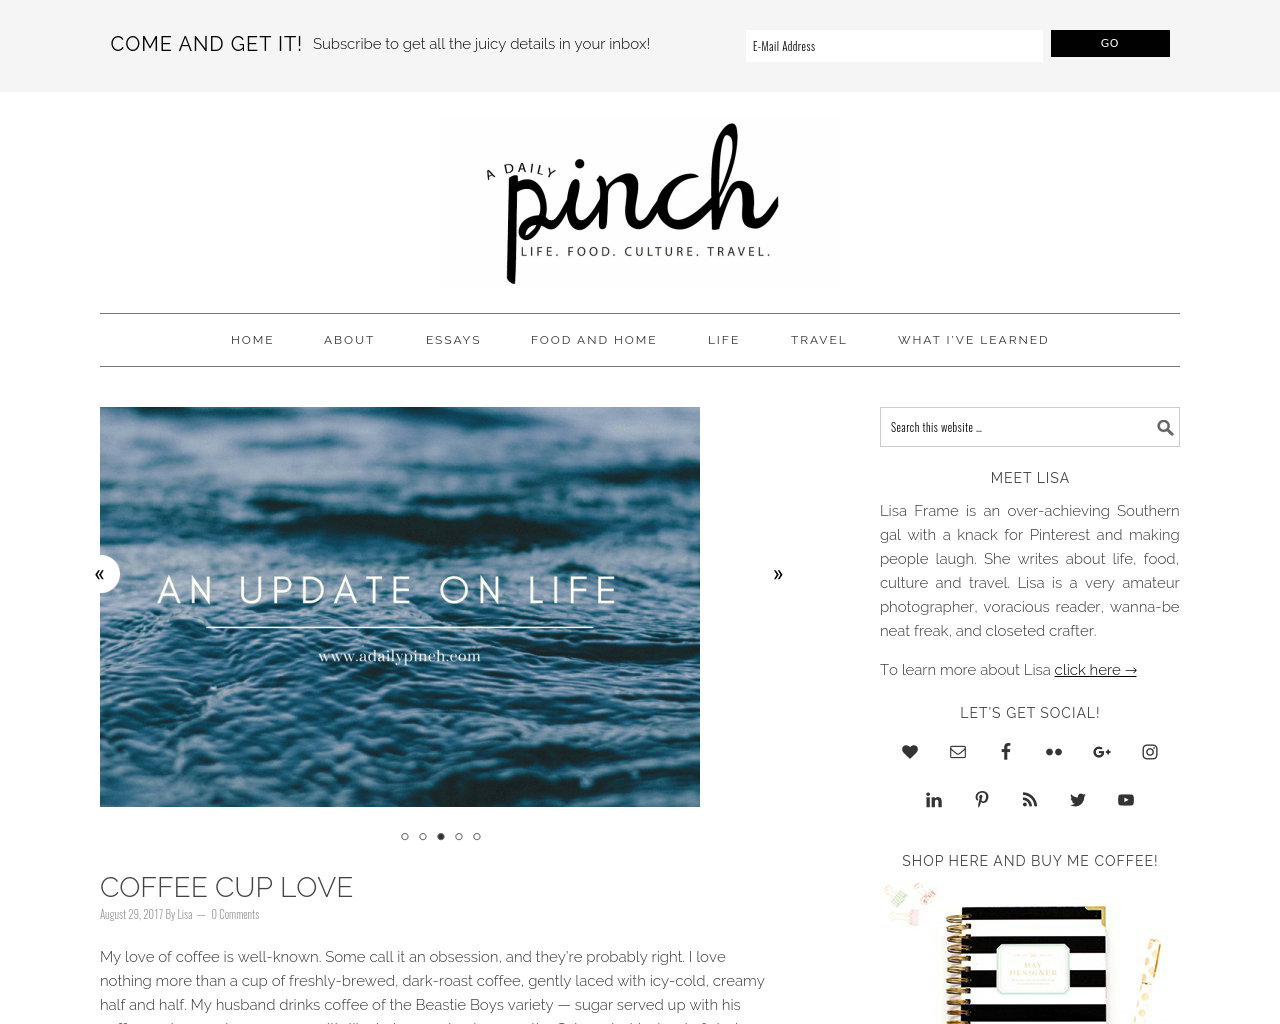 A-Daily-Pinch-Advertising-Reviews-Pricing